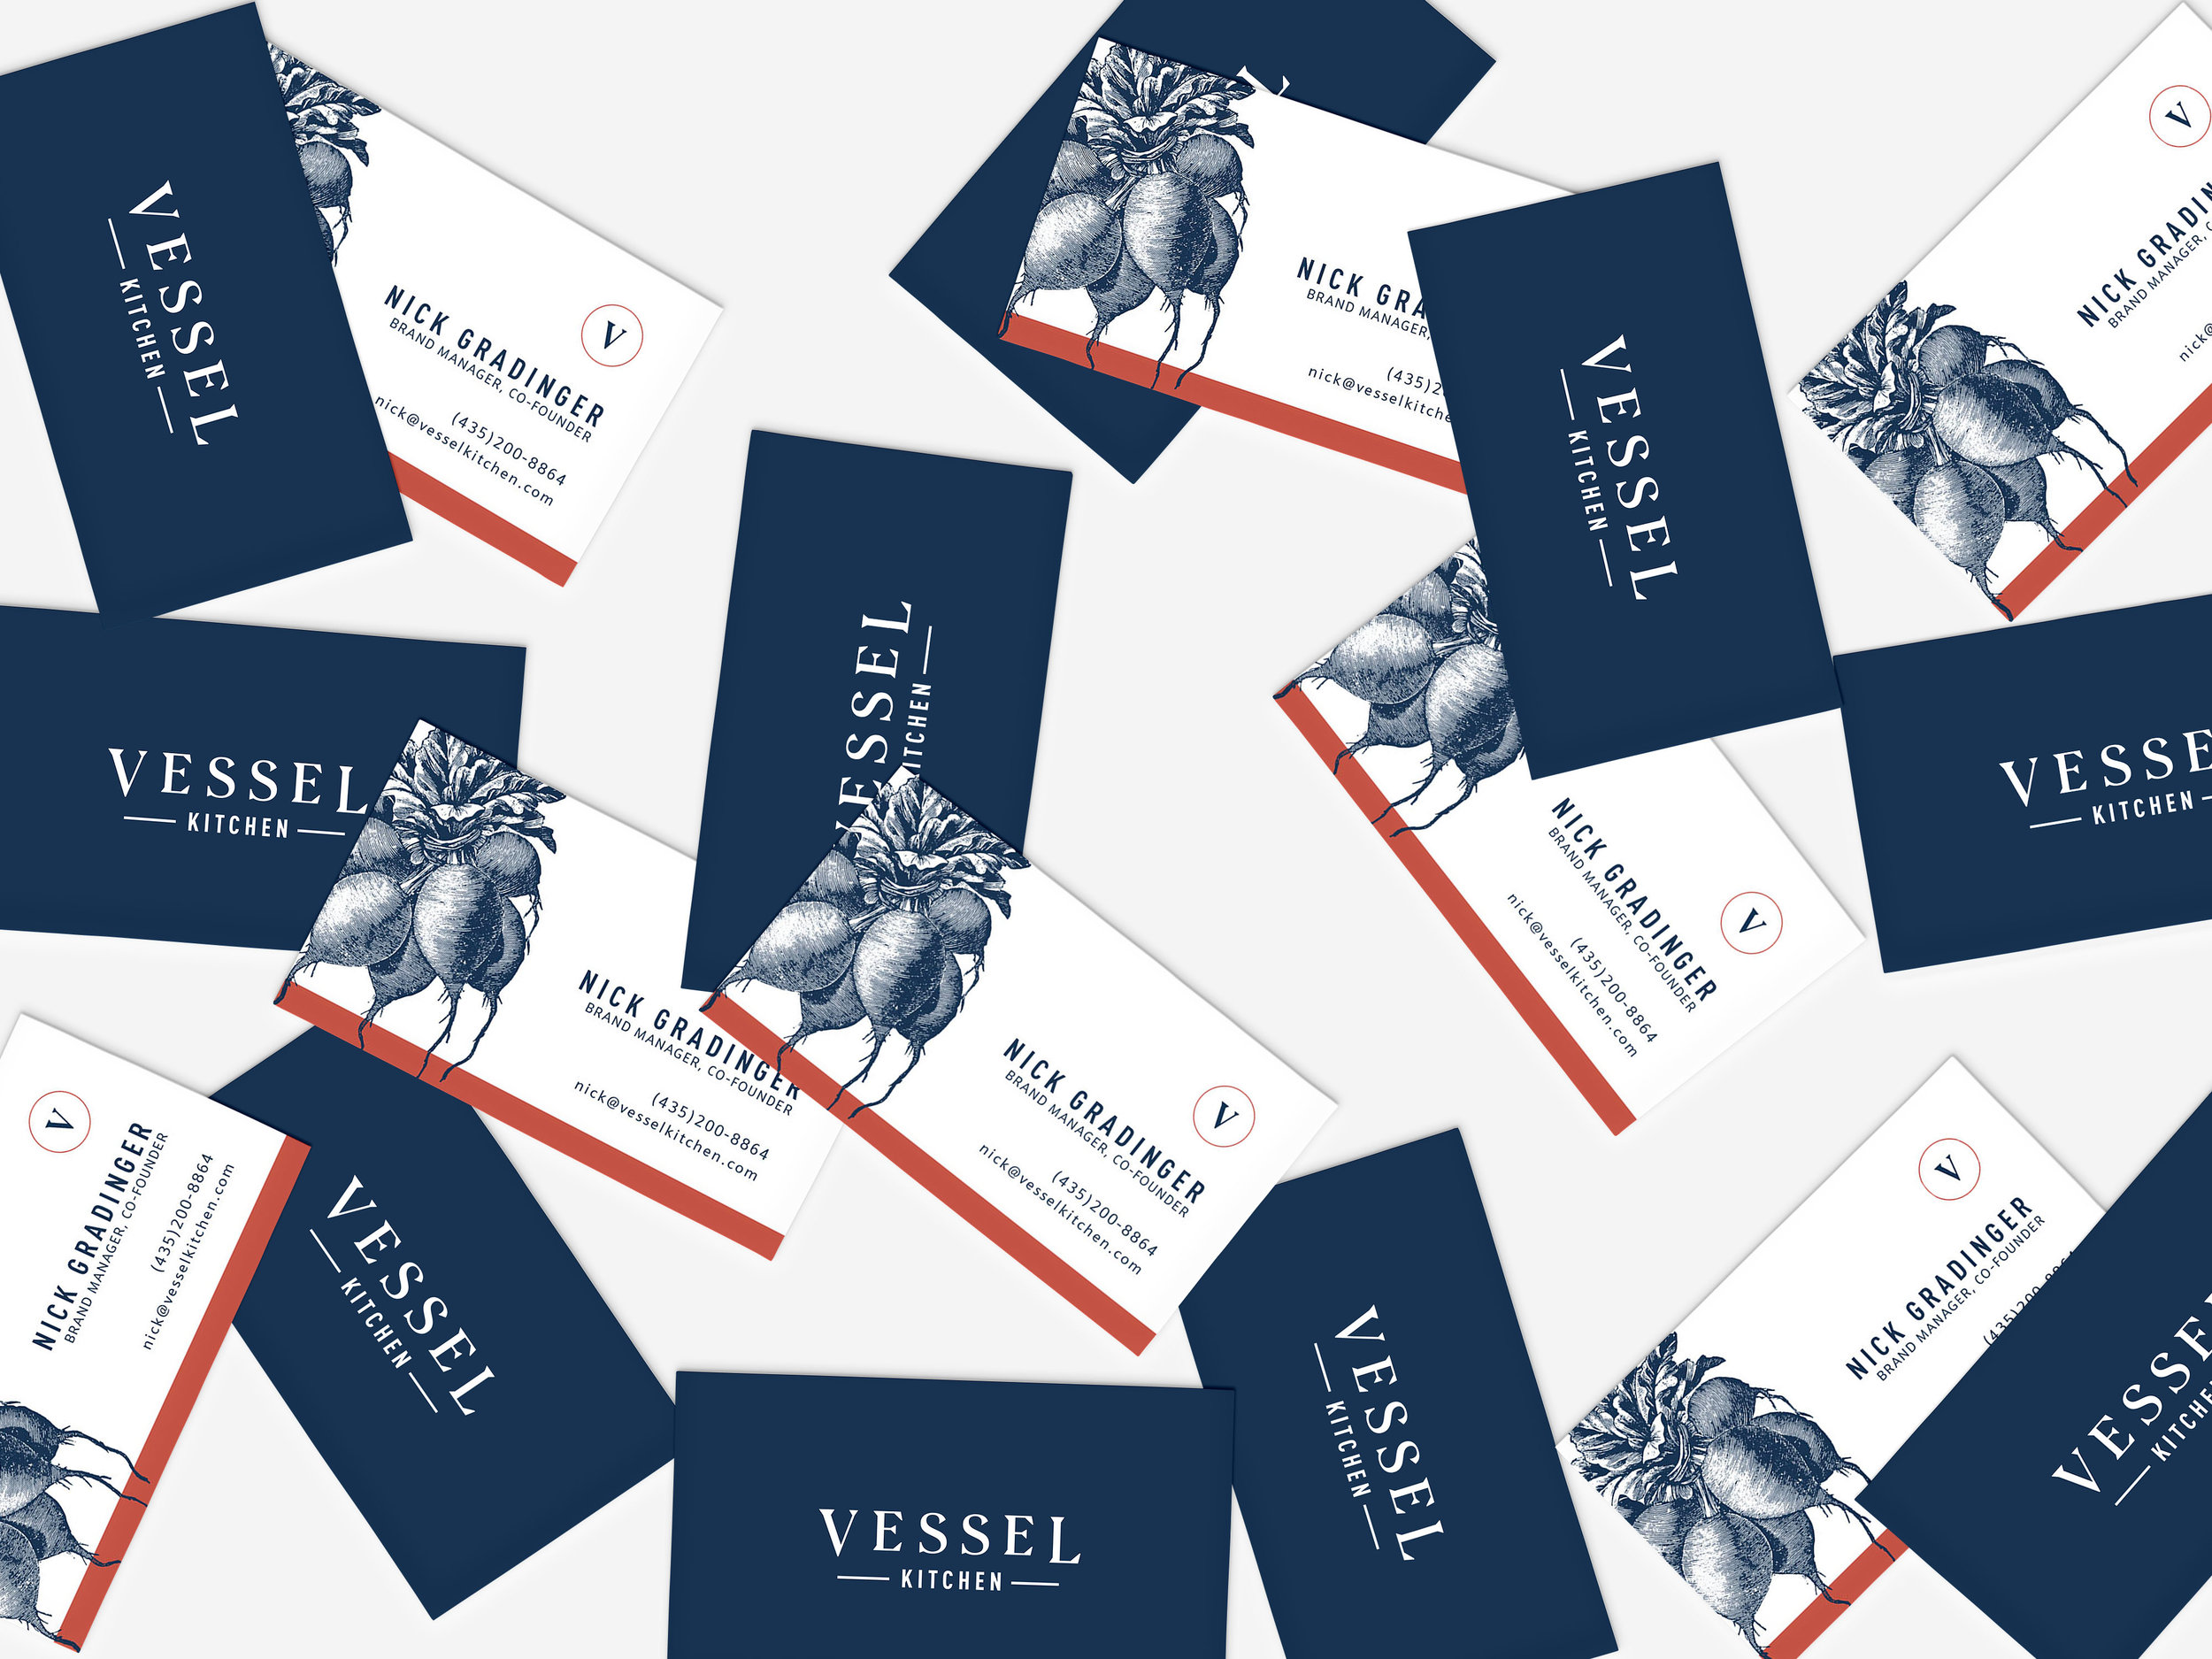 vessel-kitchen-branding-design-business-cards-clover-and-crow